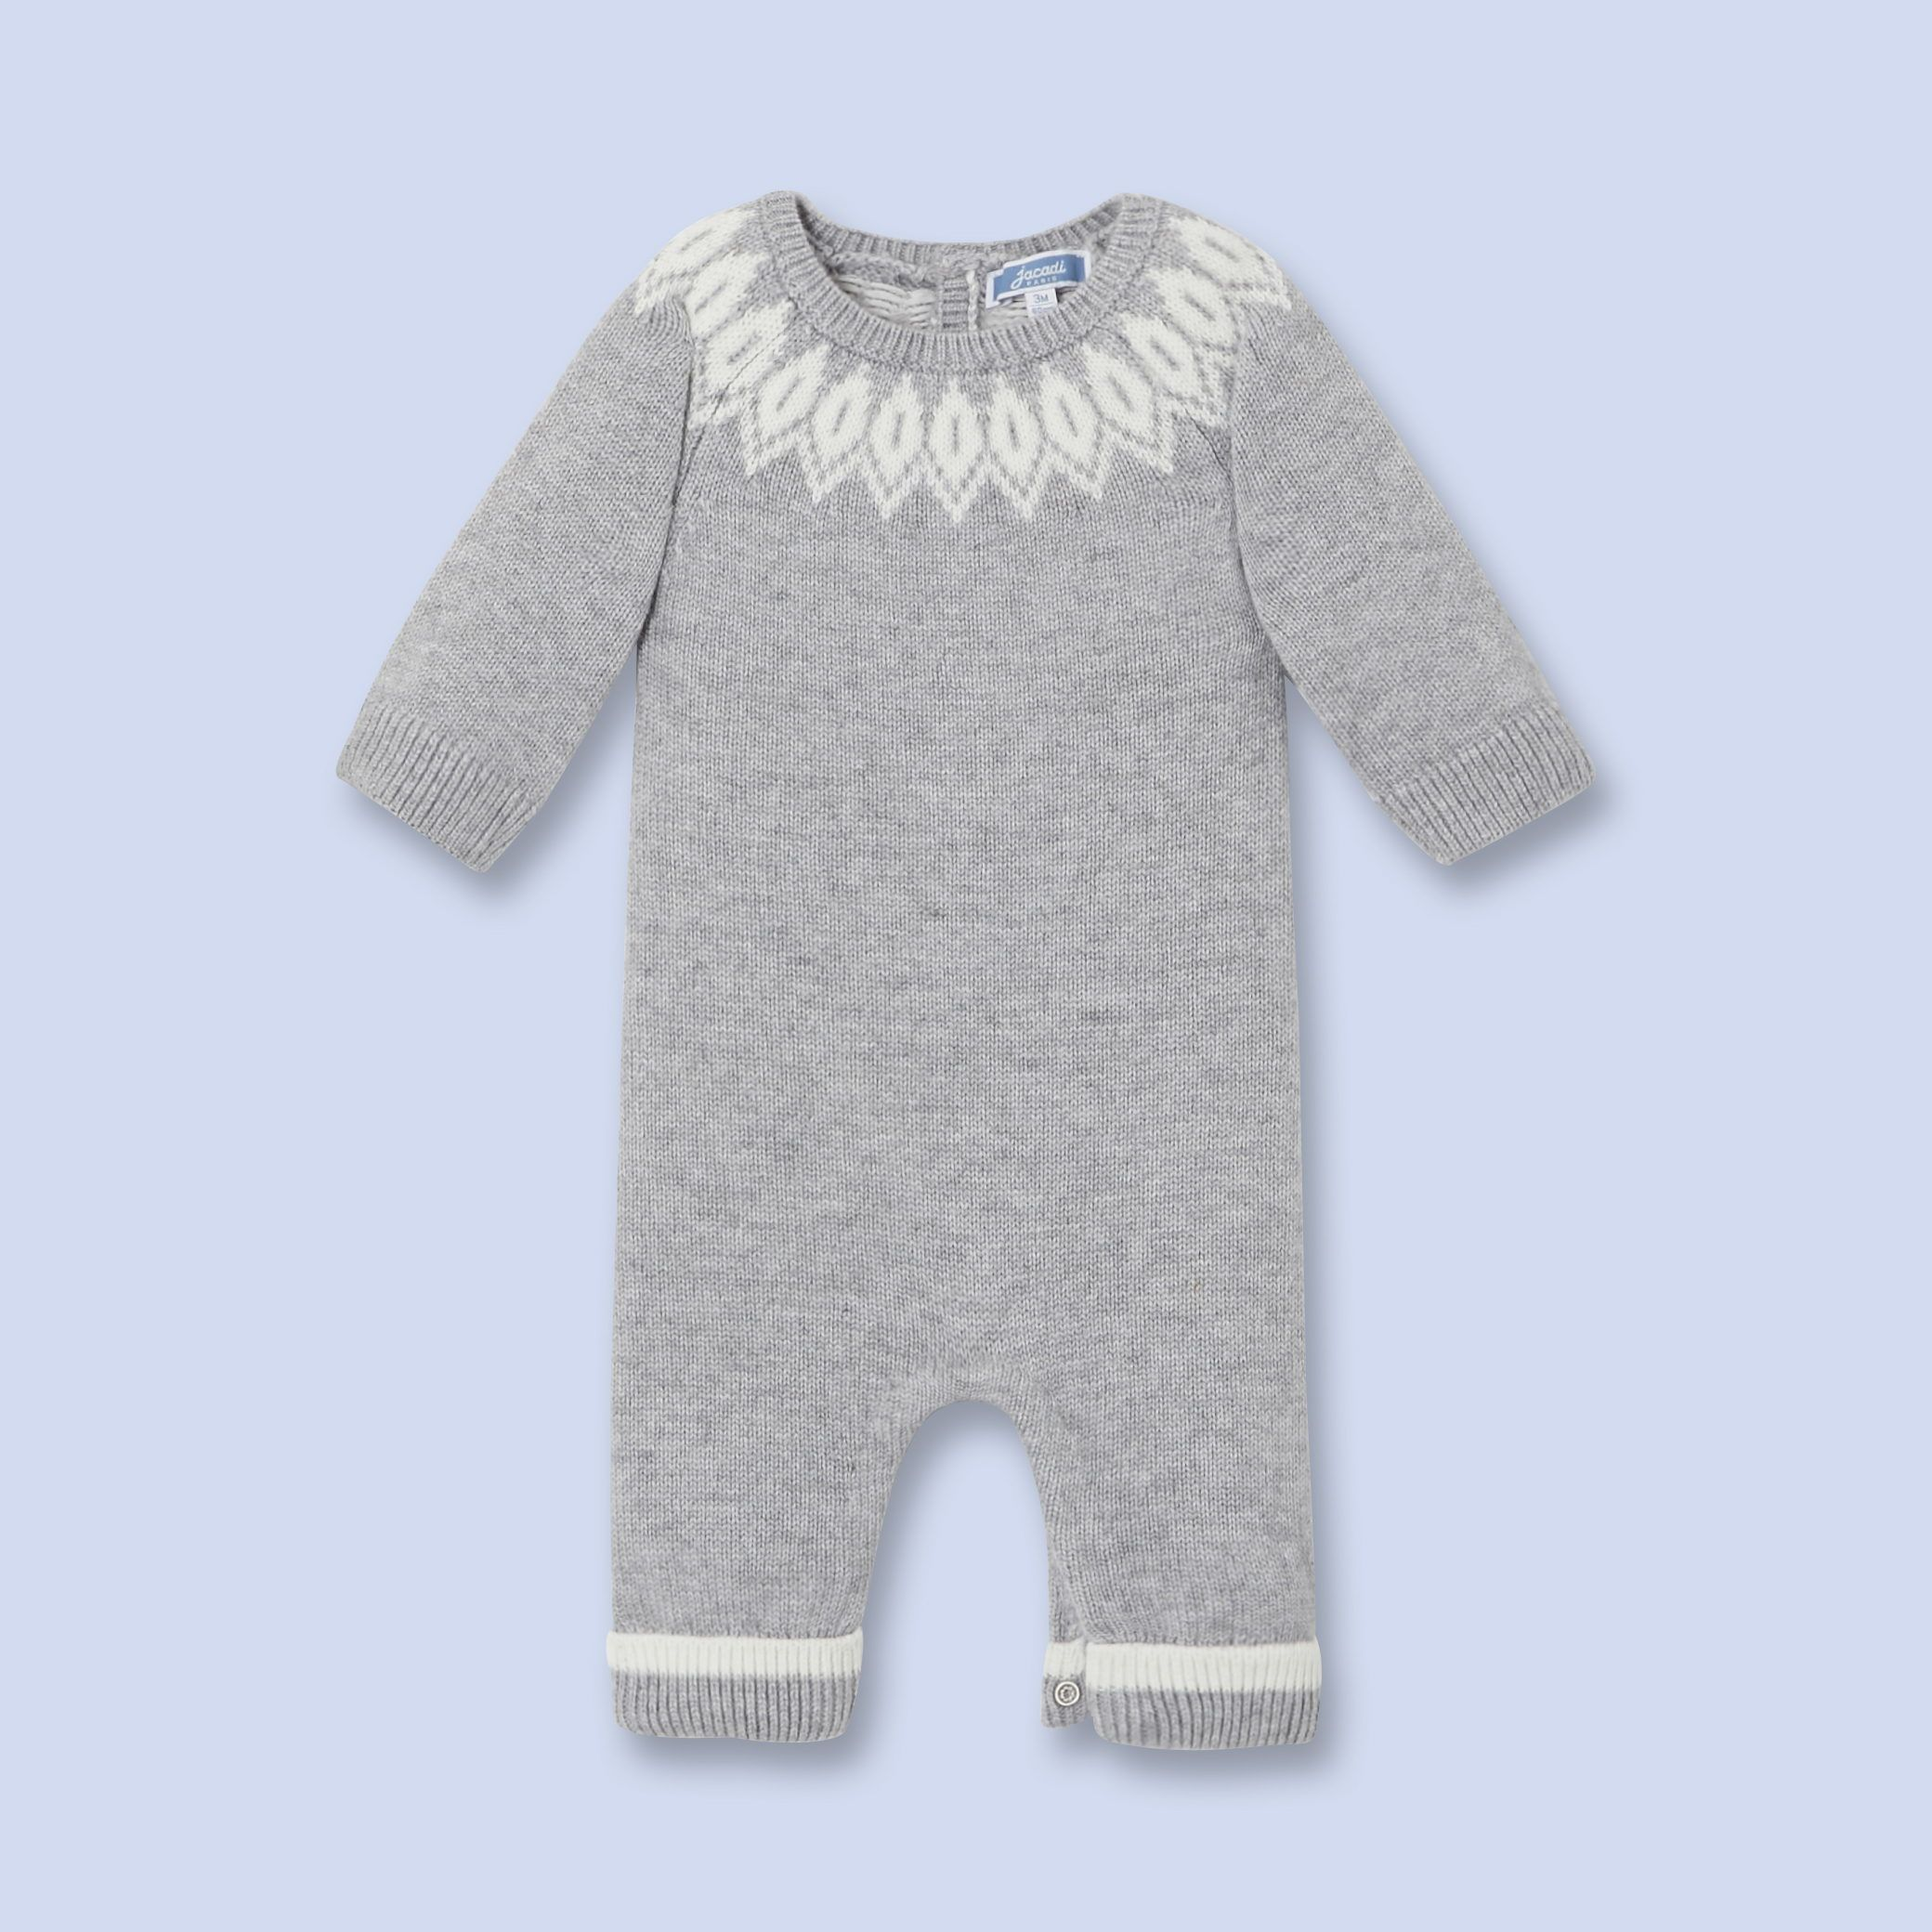 jacadi combinaison en tricot pour b b gar on layette pinterest tricot pour b b b b. Black Bedroom Furniture Sets. Home Design Ideas